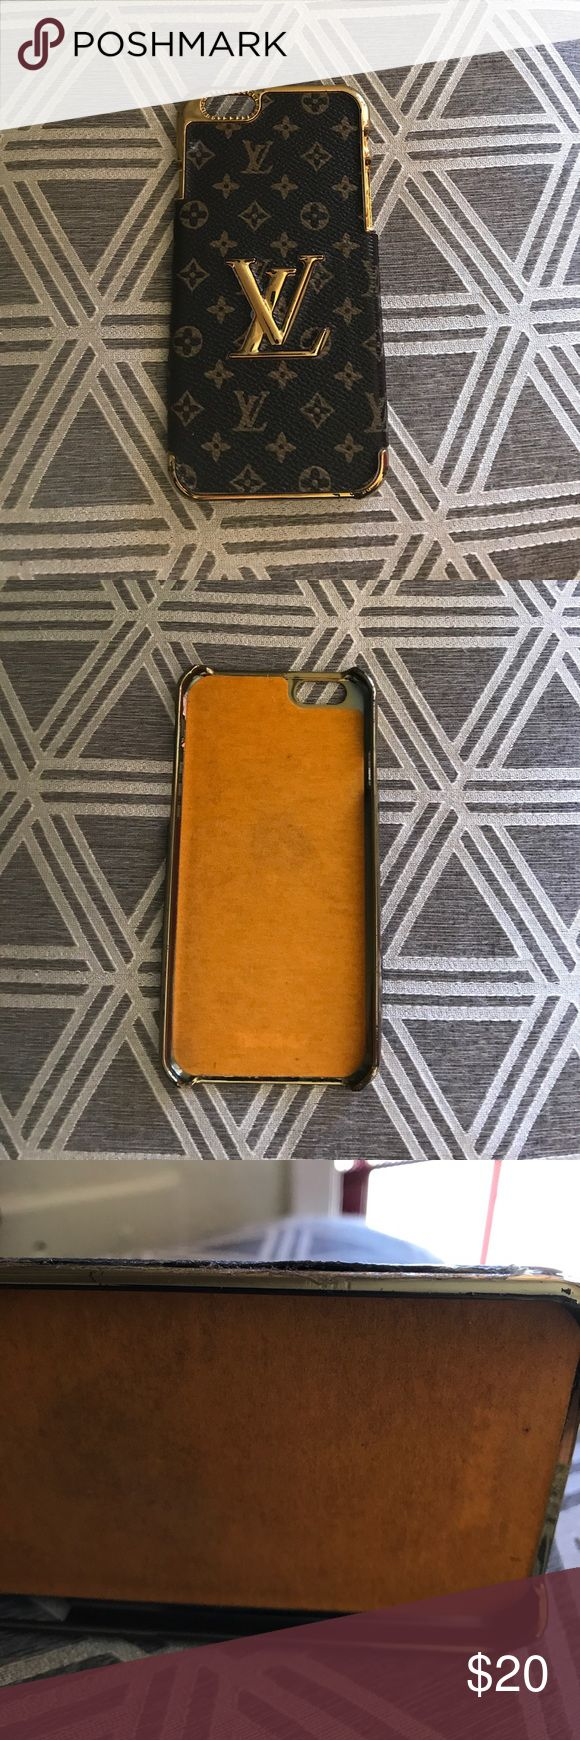 Iphone 6 case Iphone 6 case please see pics for scuffs and wear. Accessories Phone Cases